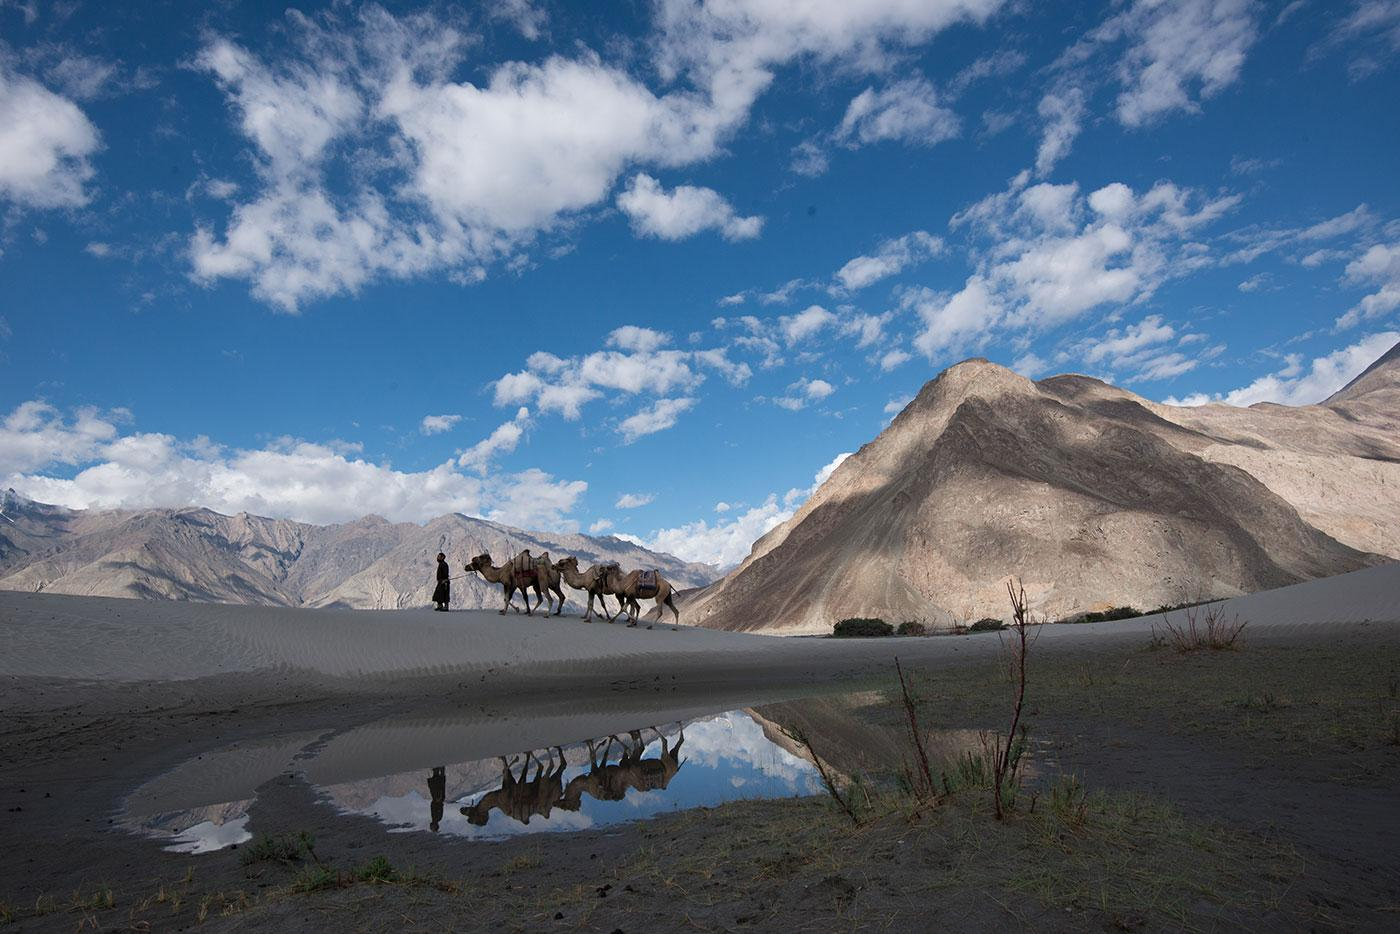 A camel herder leads his camel train over the sand dunes in Nubra Valley, India. Photo: BBC/Alex Lanchester